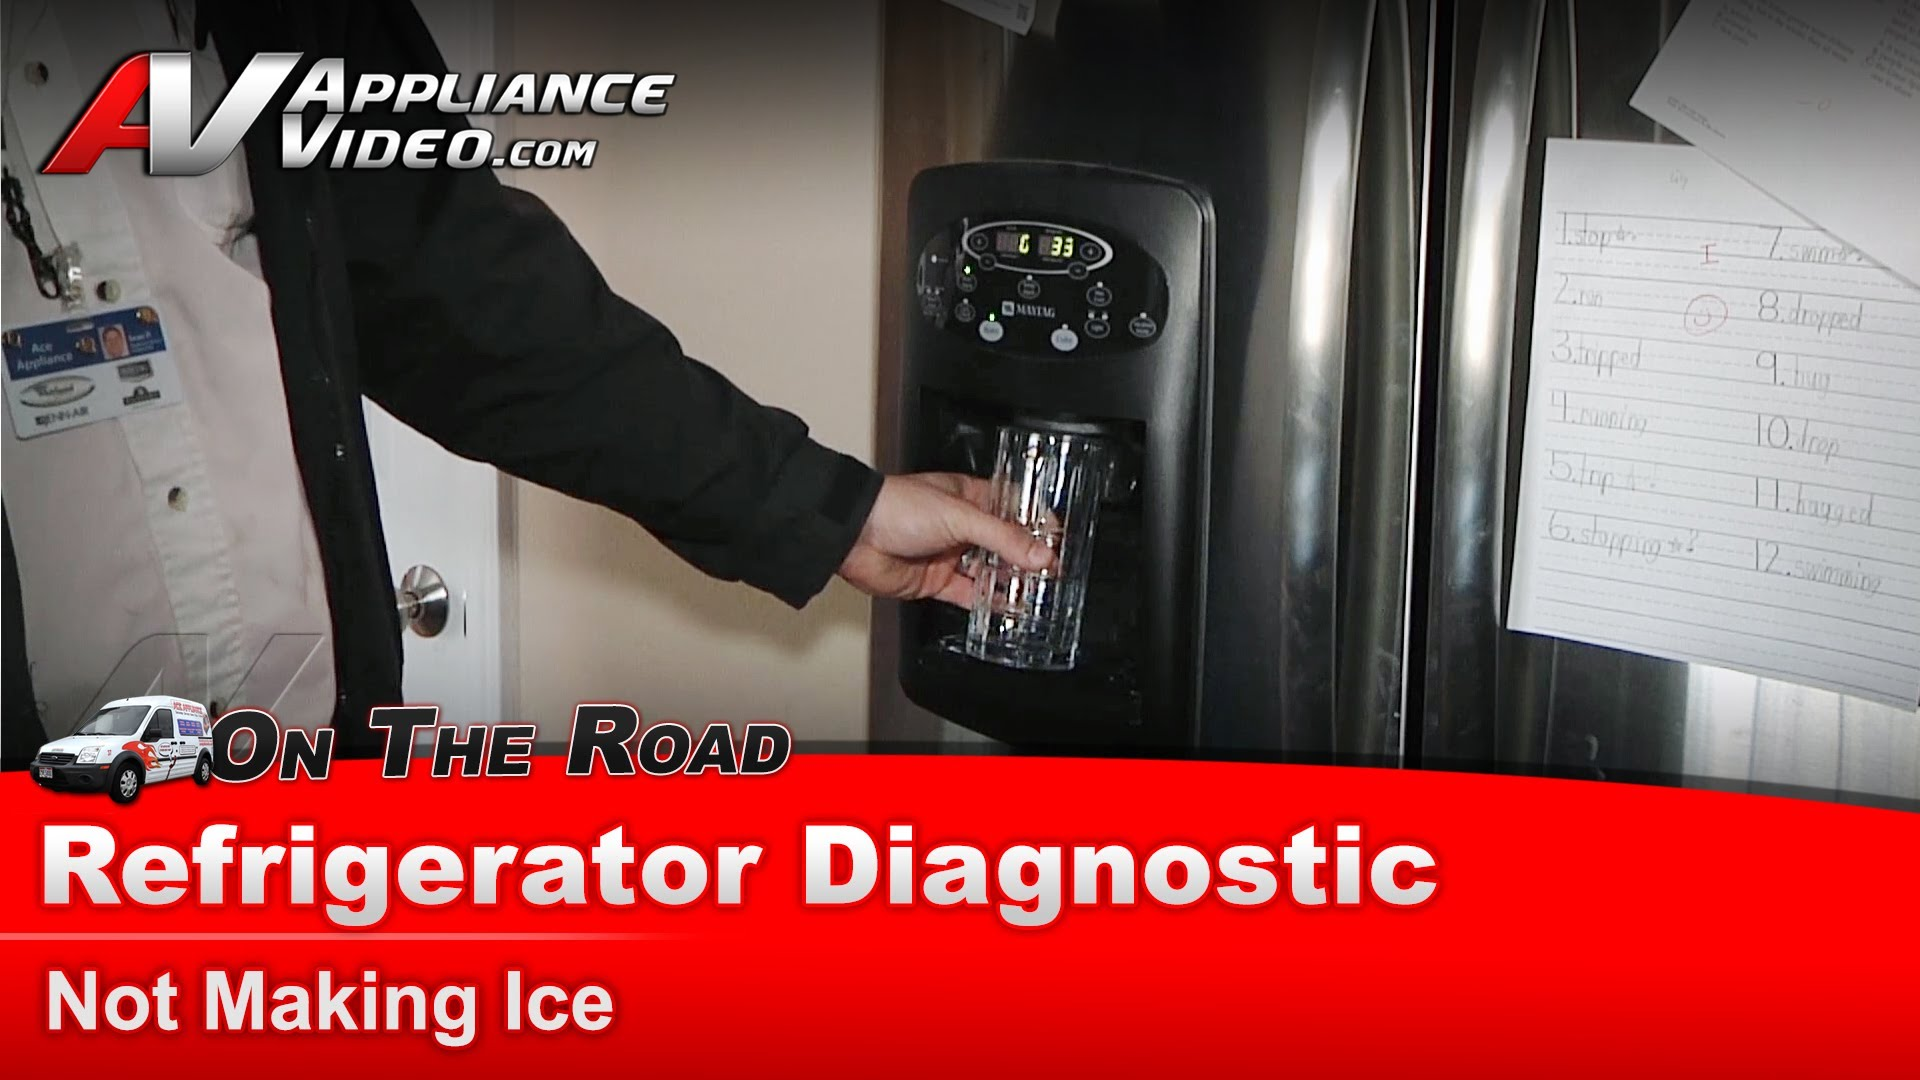 Whirlpool Mfi2568aes Refrigerator Diagnostic Not